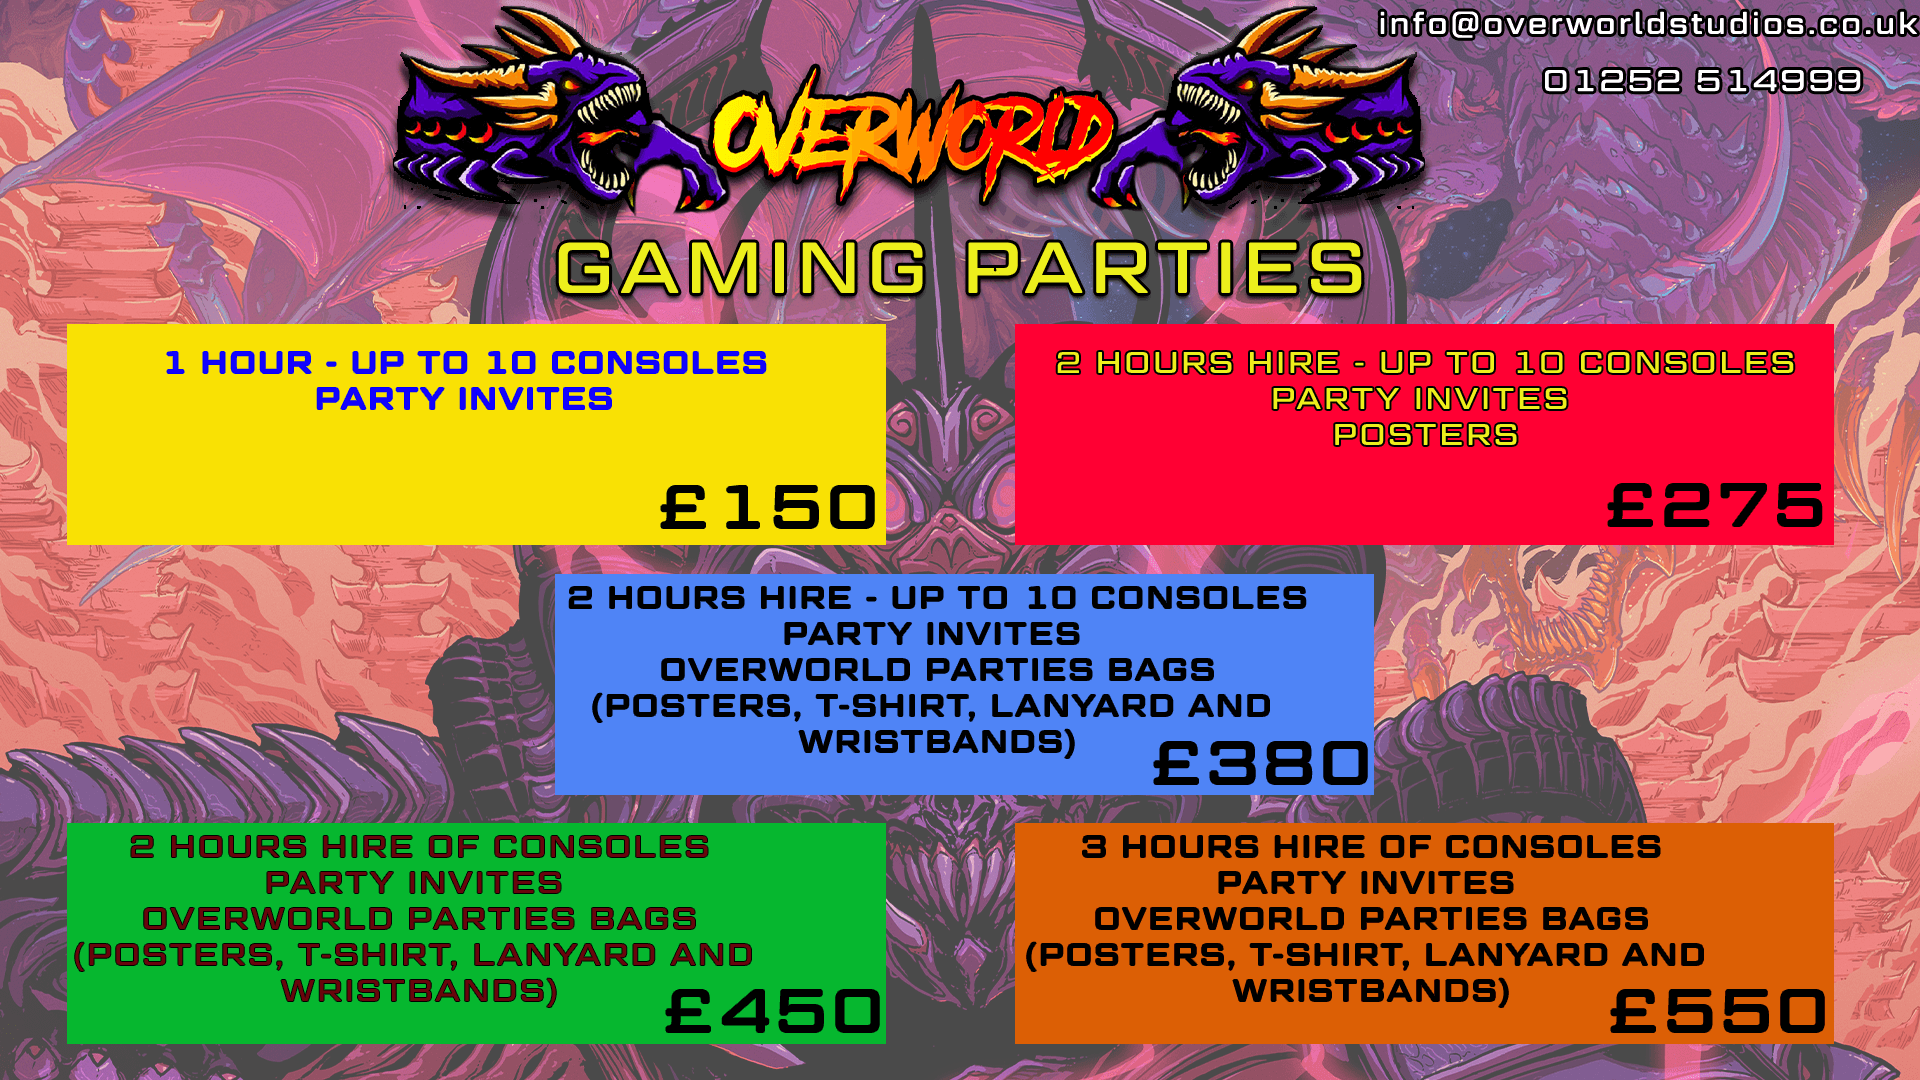 PARTIES AT OVERWORLD!